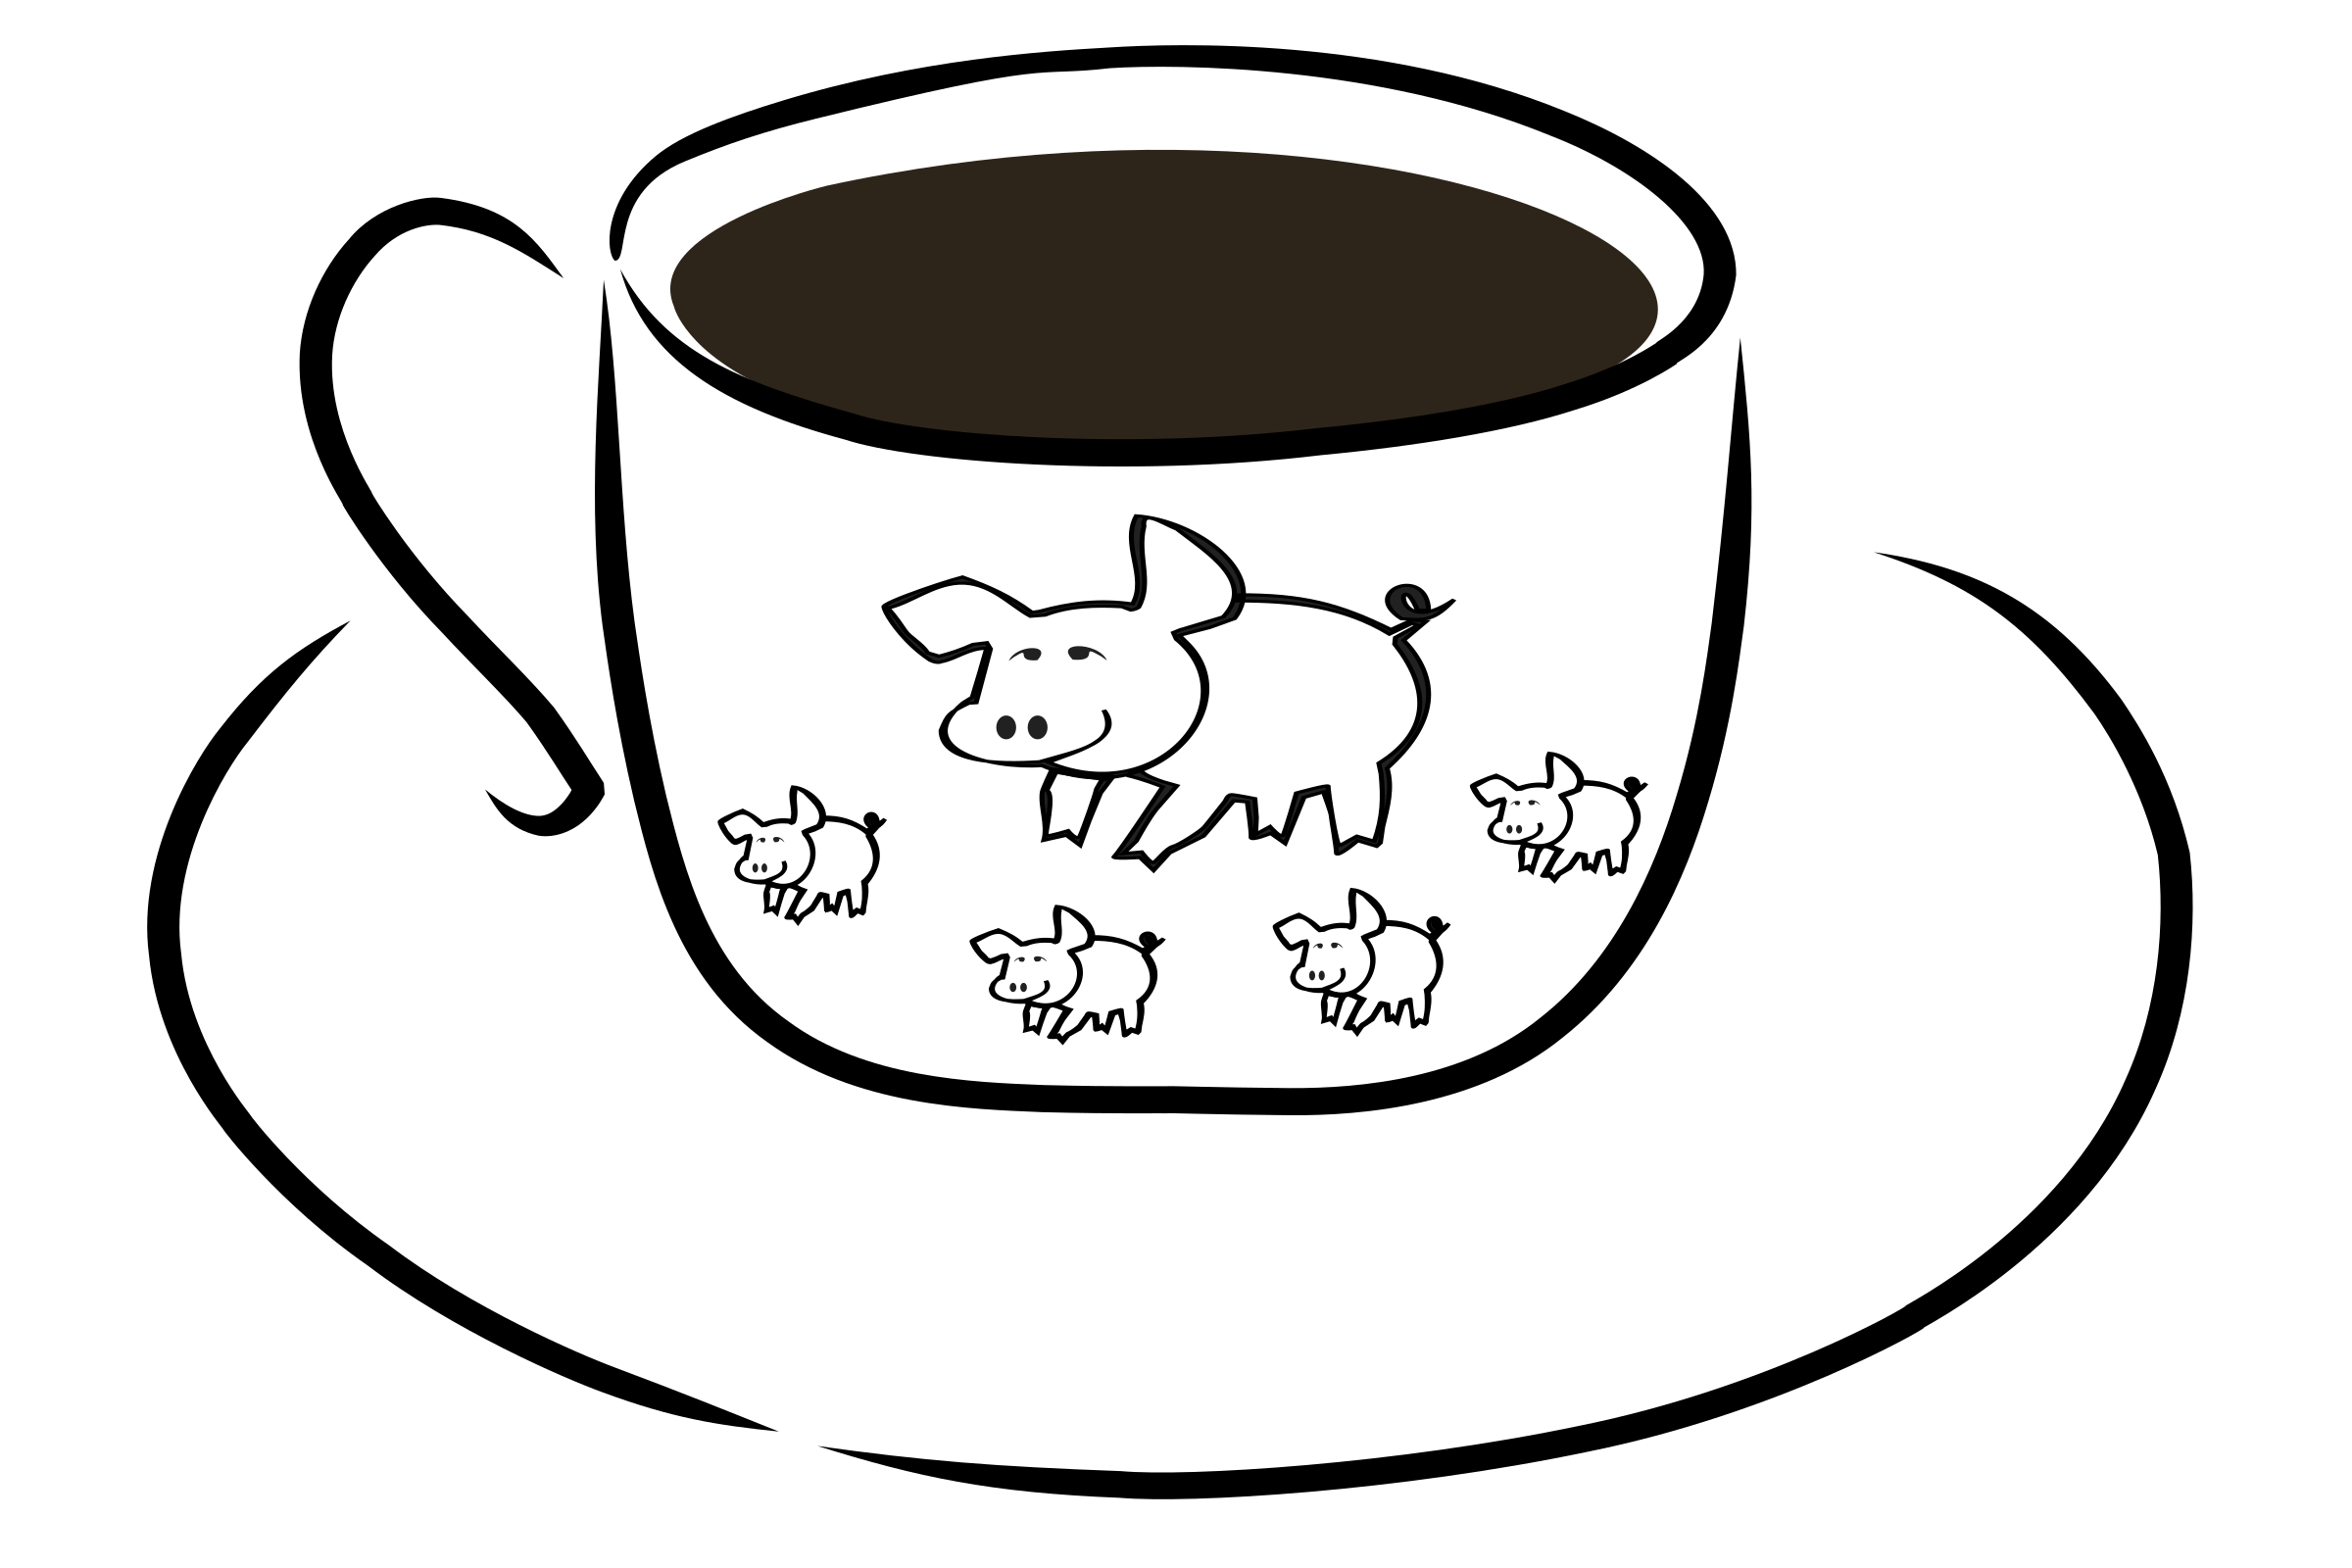 Cup with pig design by yamachem